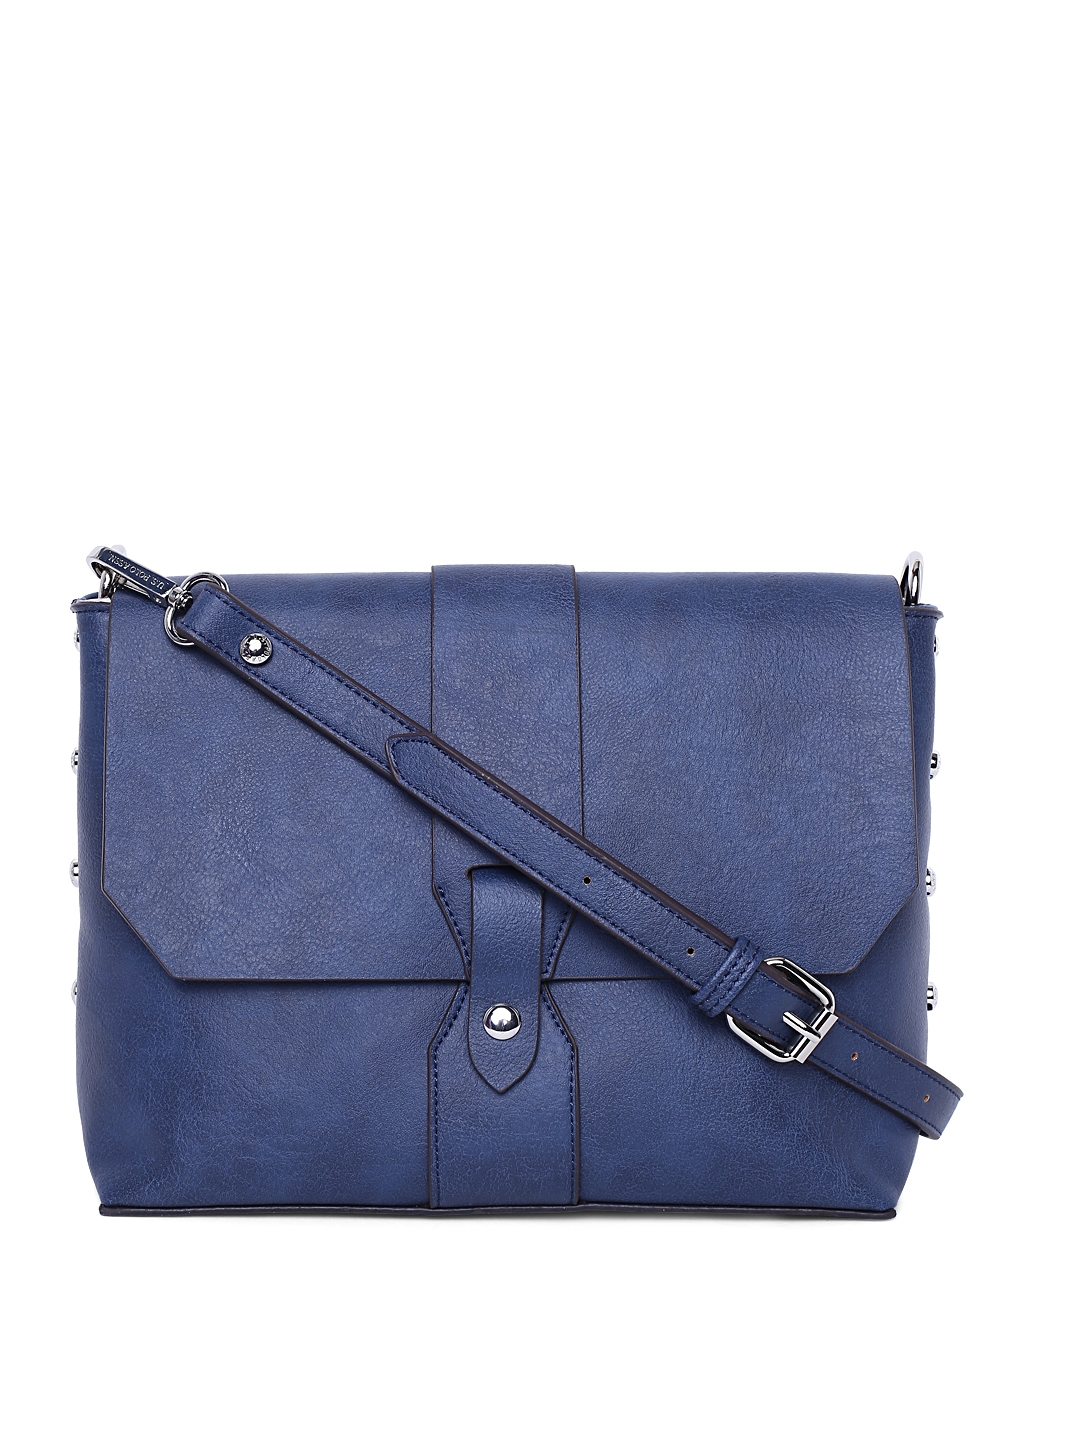 Buy U.S. Polo Assn. Women Blue Solid Sling Bag - Handbags for Women ... c98dc20be2f14